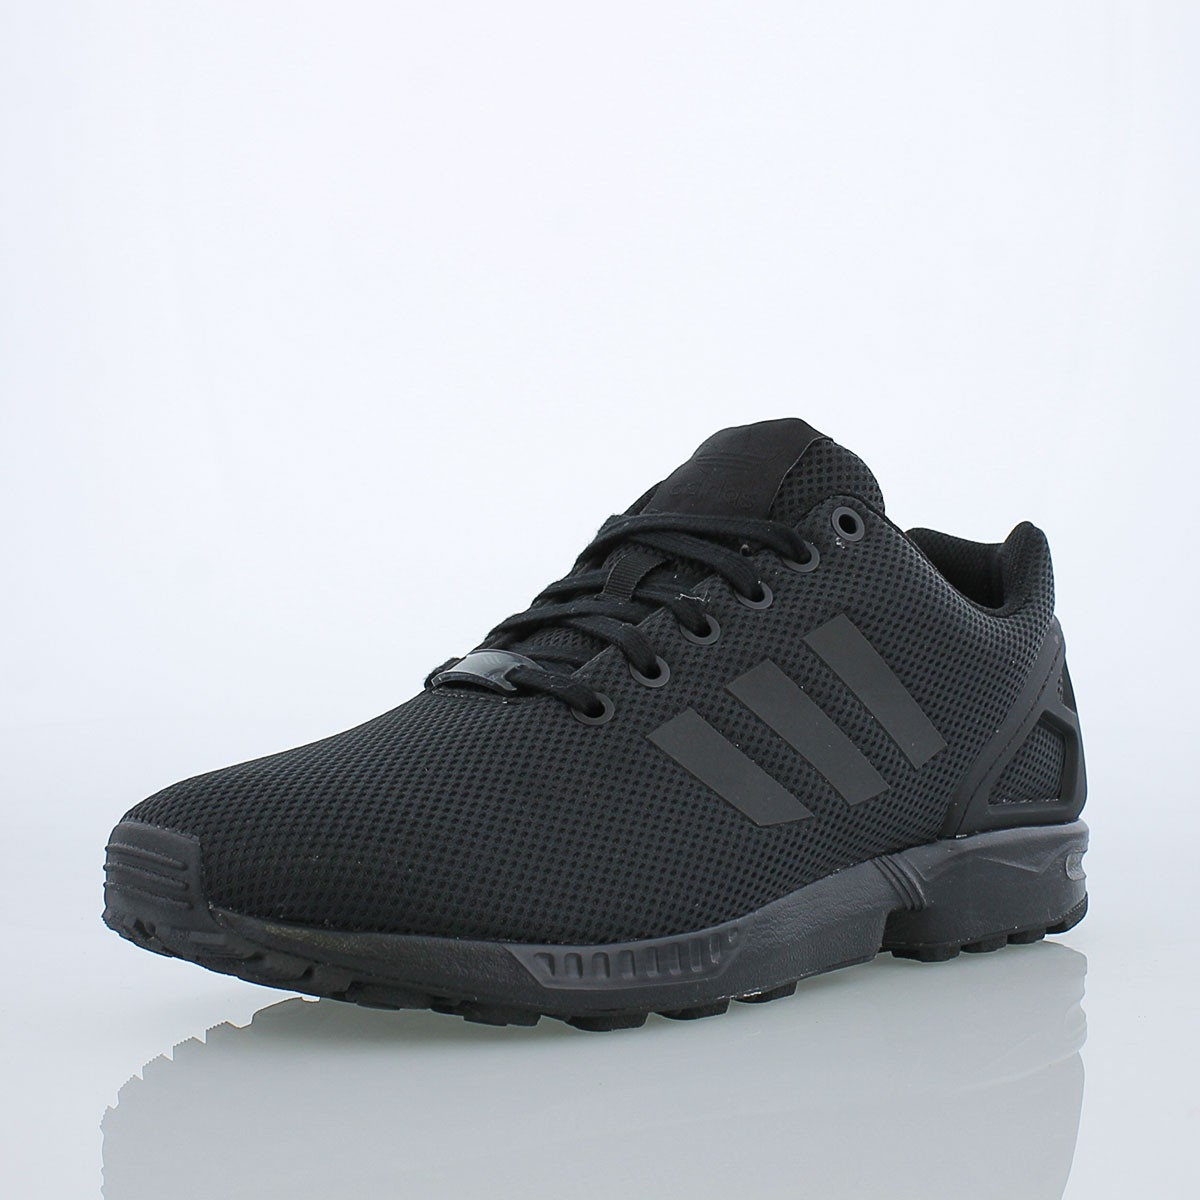 bcce6fdbd9b46 Adidas Zx Flux 2016 Black los-granados-apartment.co.uk